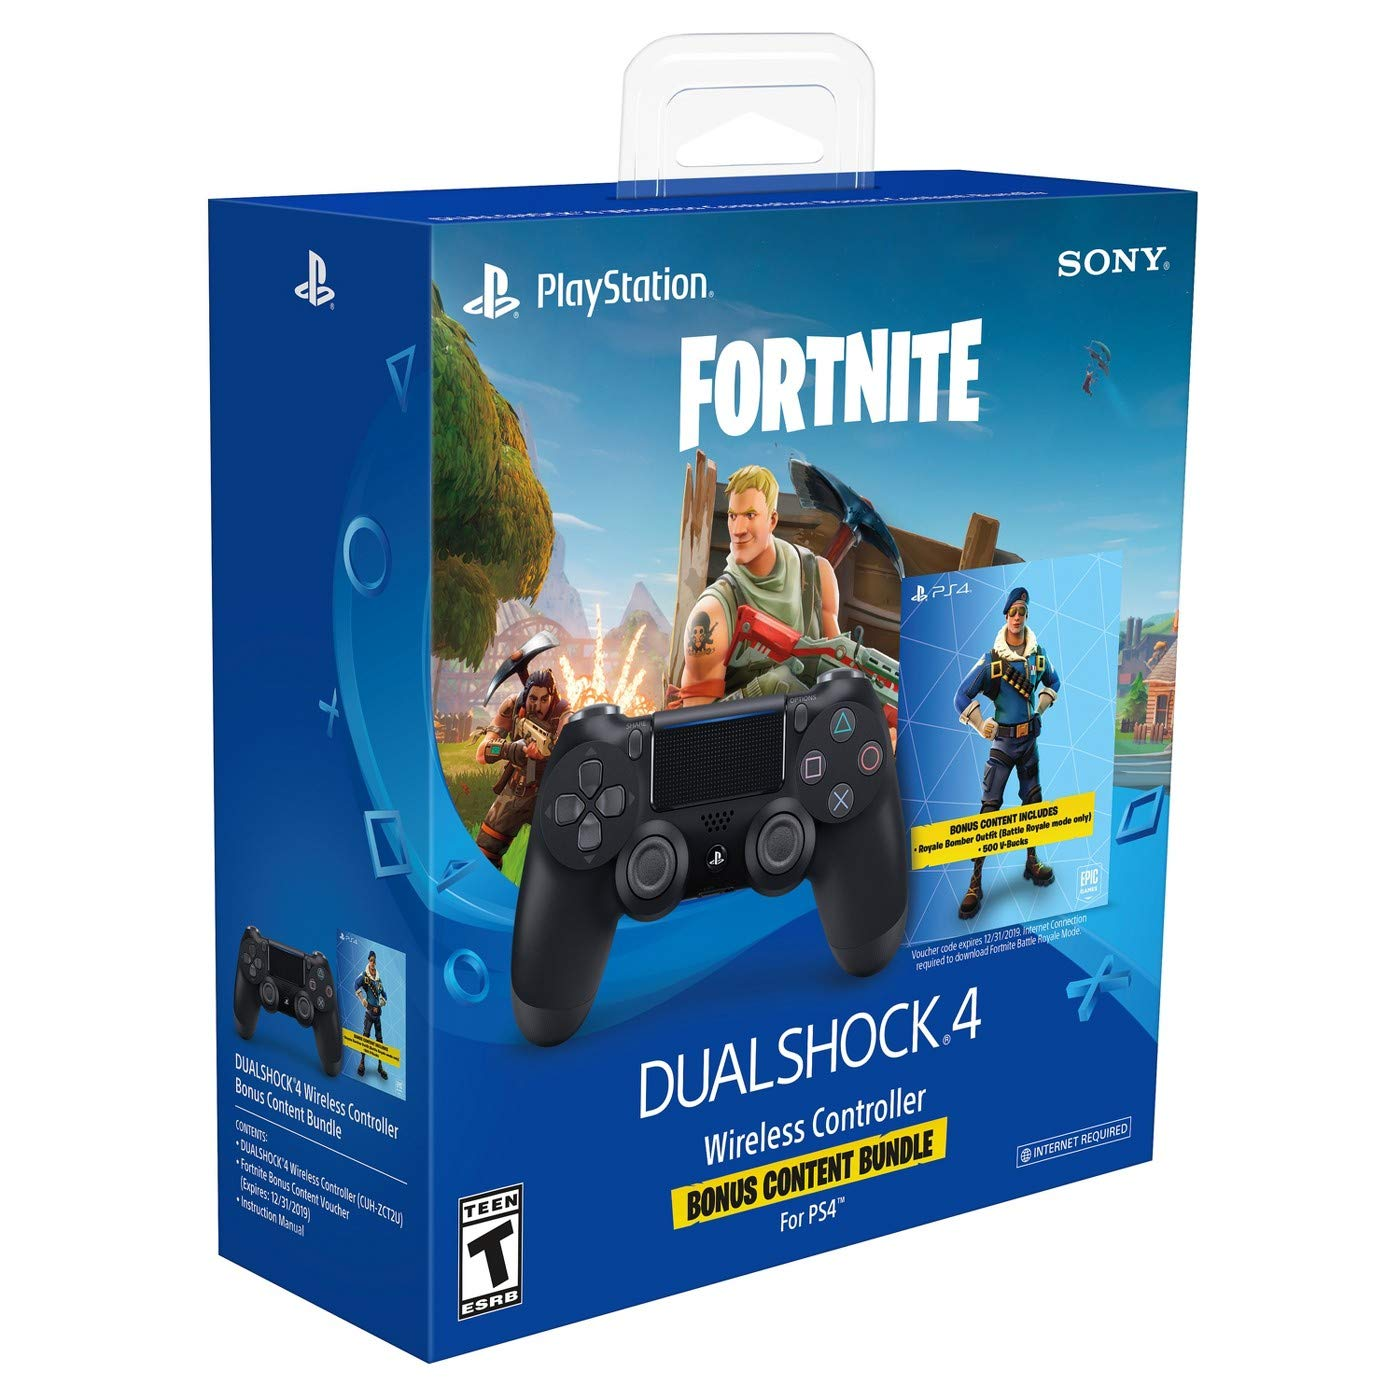 Amazon.com: Playstation 4 Fortnite Starter Bundle: Playstation Exclusive Royale Bomber Outfit, 500 V-Bucks, Playstation 4 Slim 1 TB Console with Extra ...